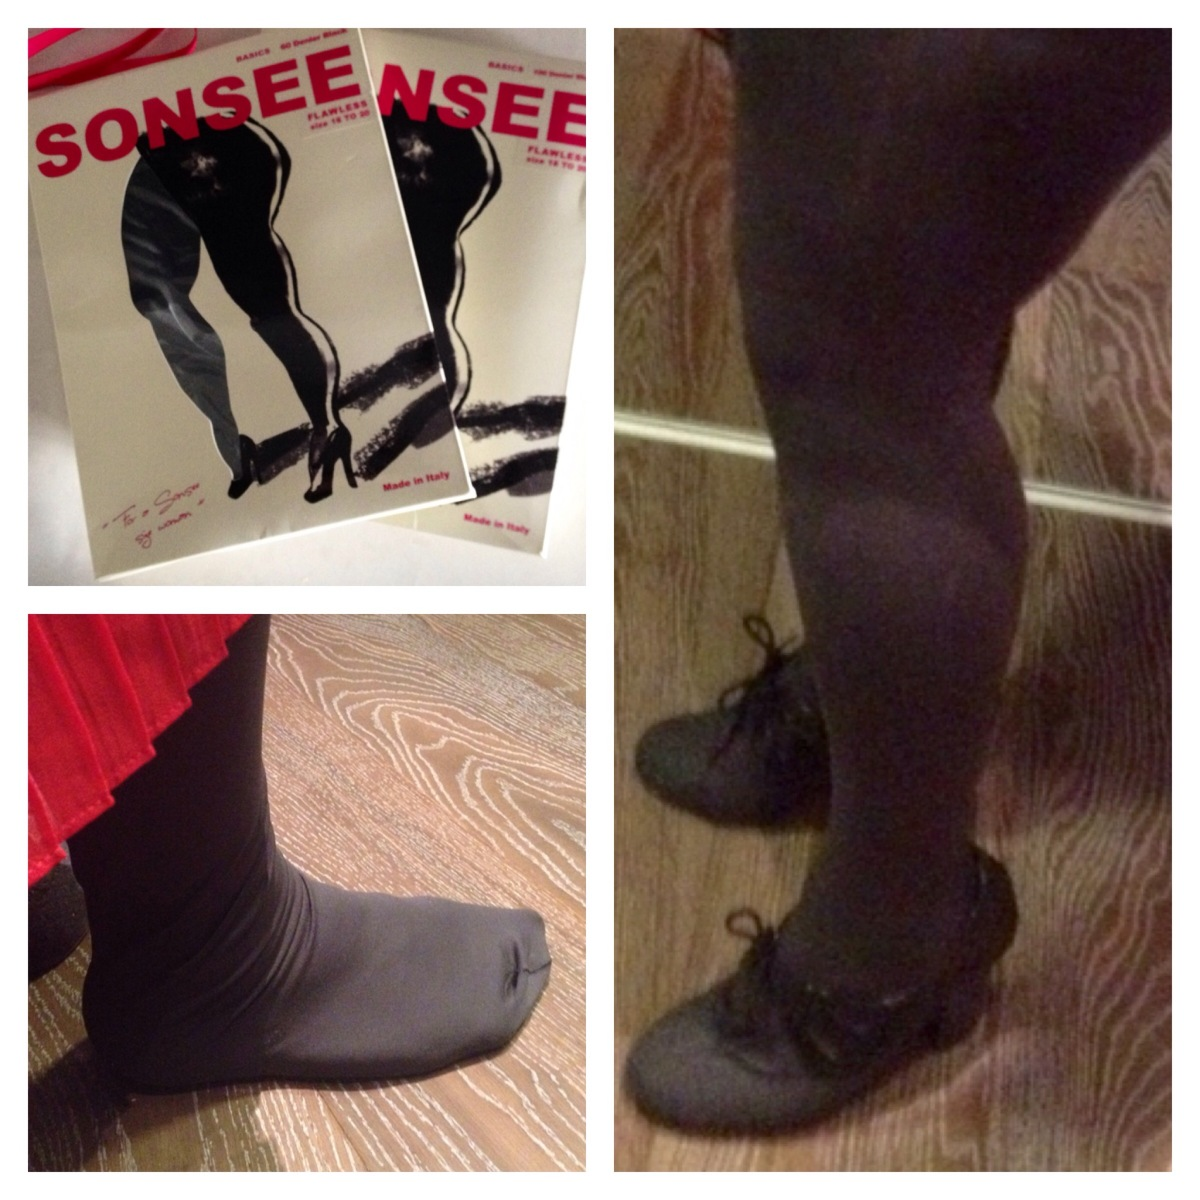 SONSEE Woman – ProductReview